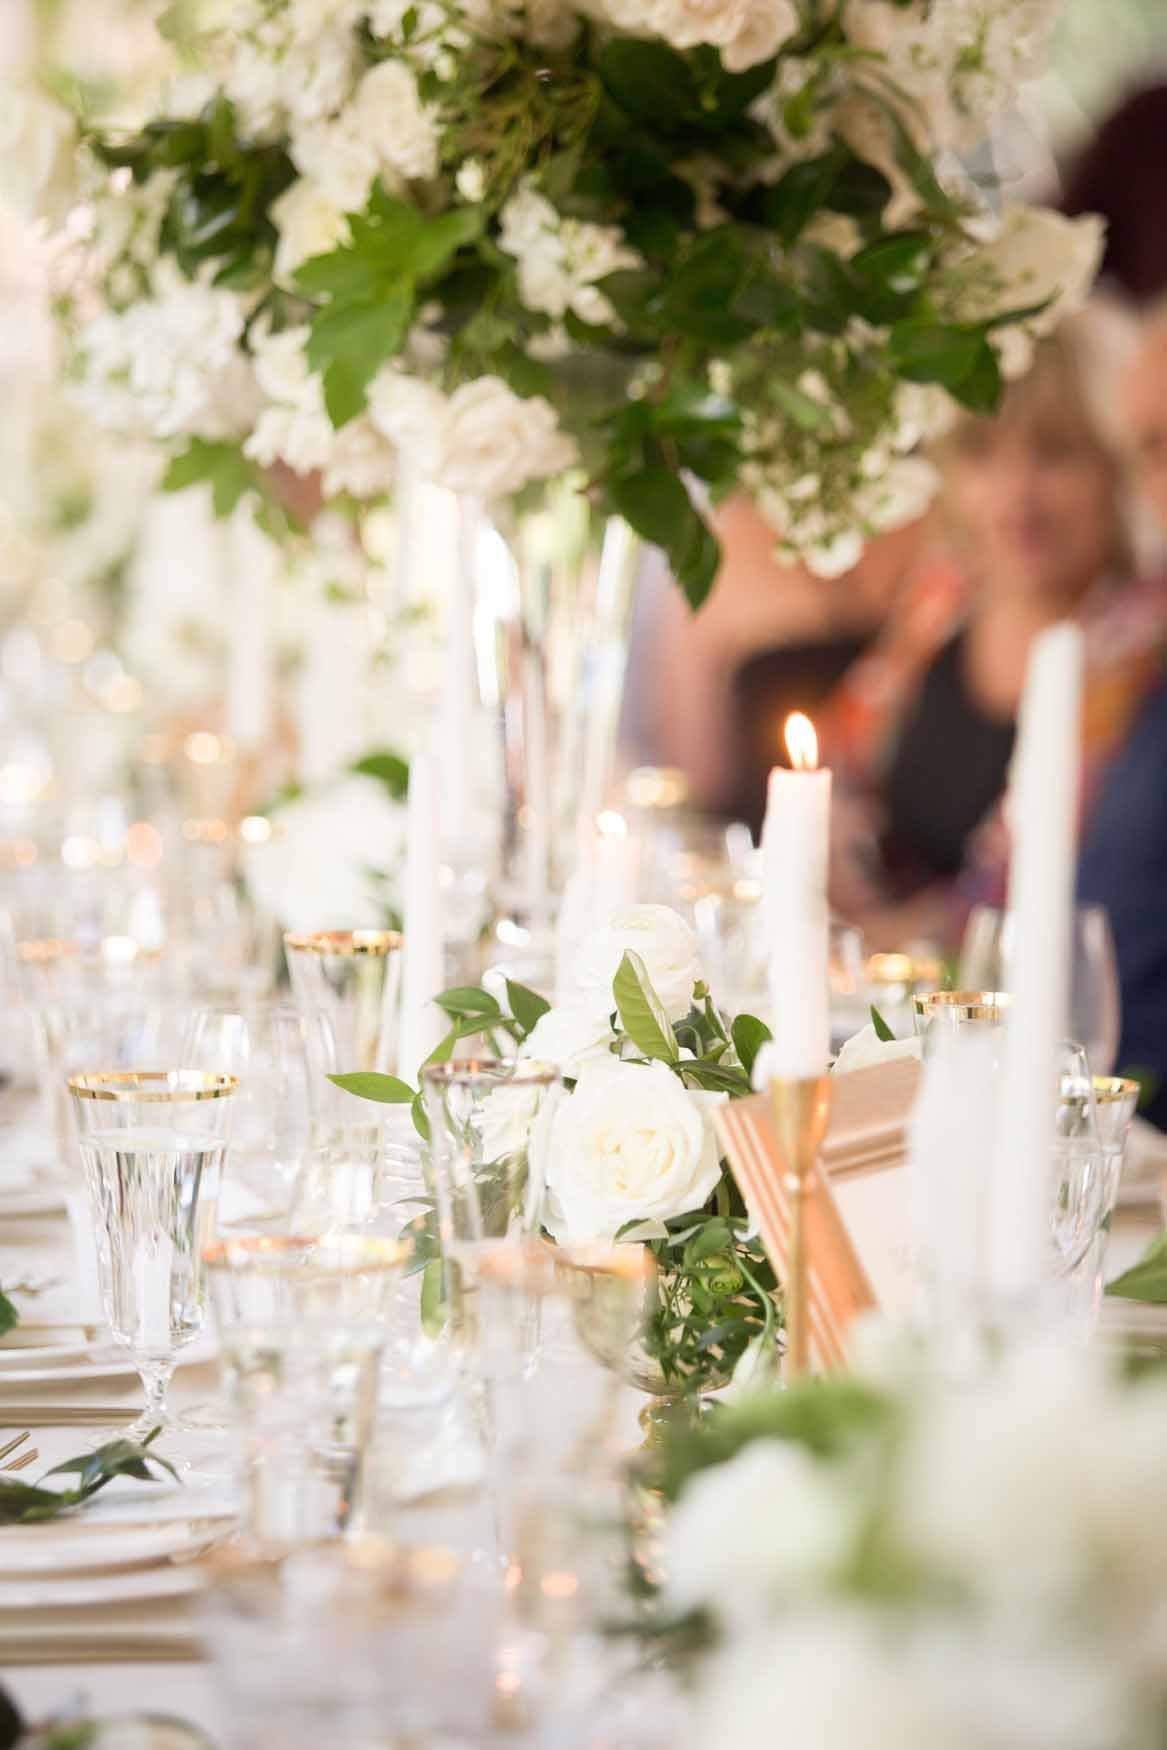 Tall garden style white and green arrangement with candles